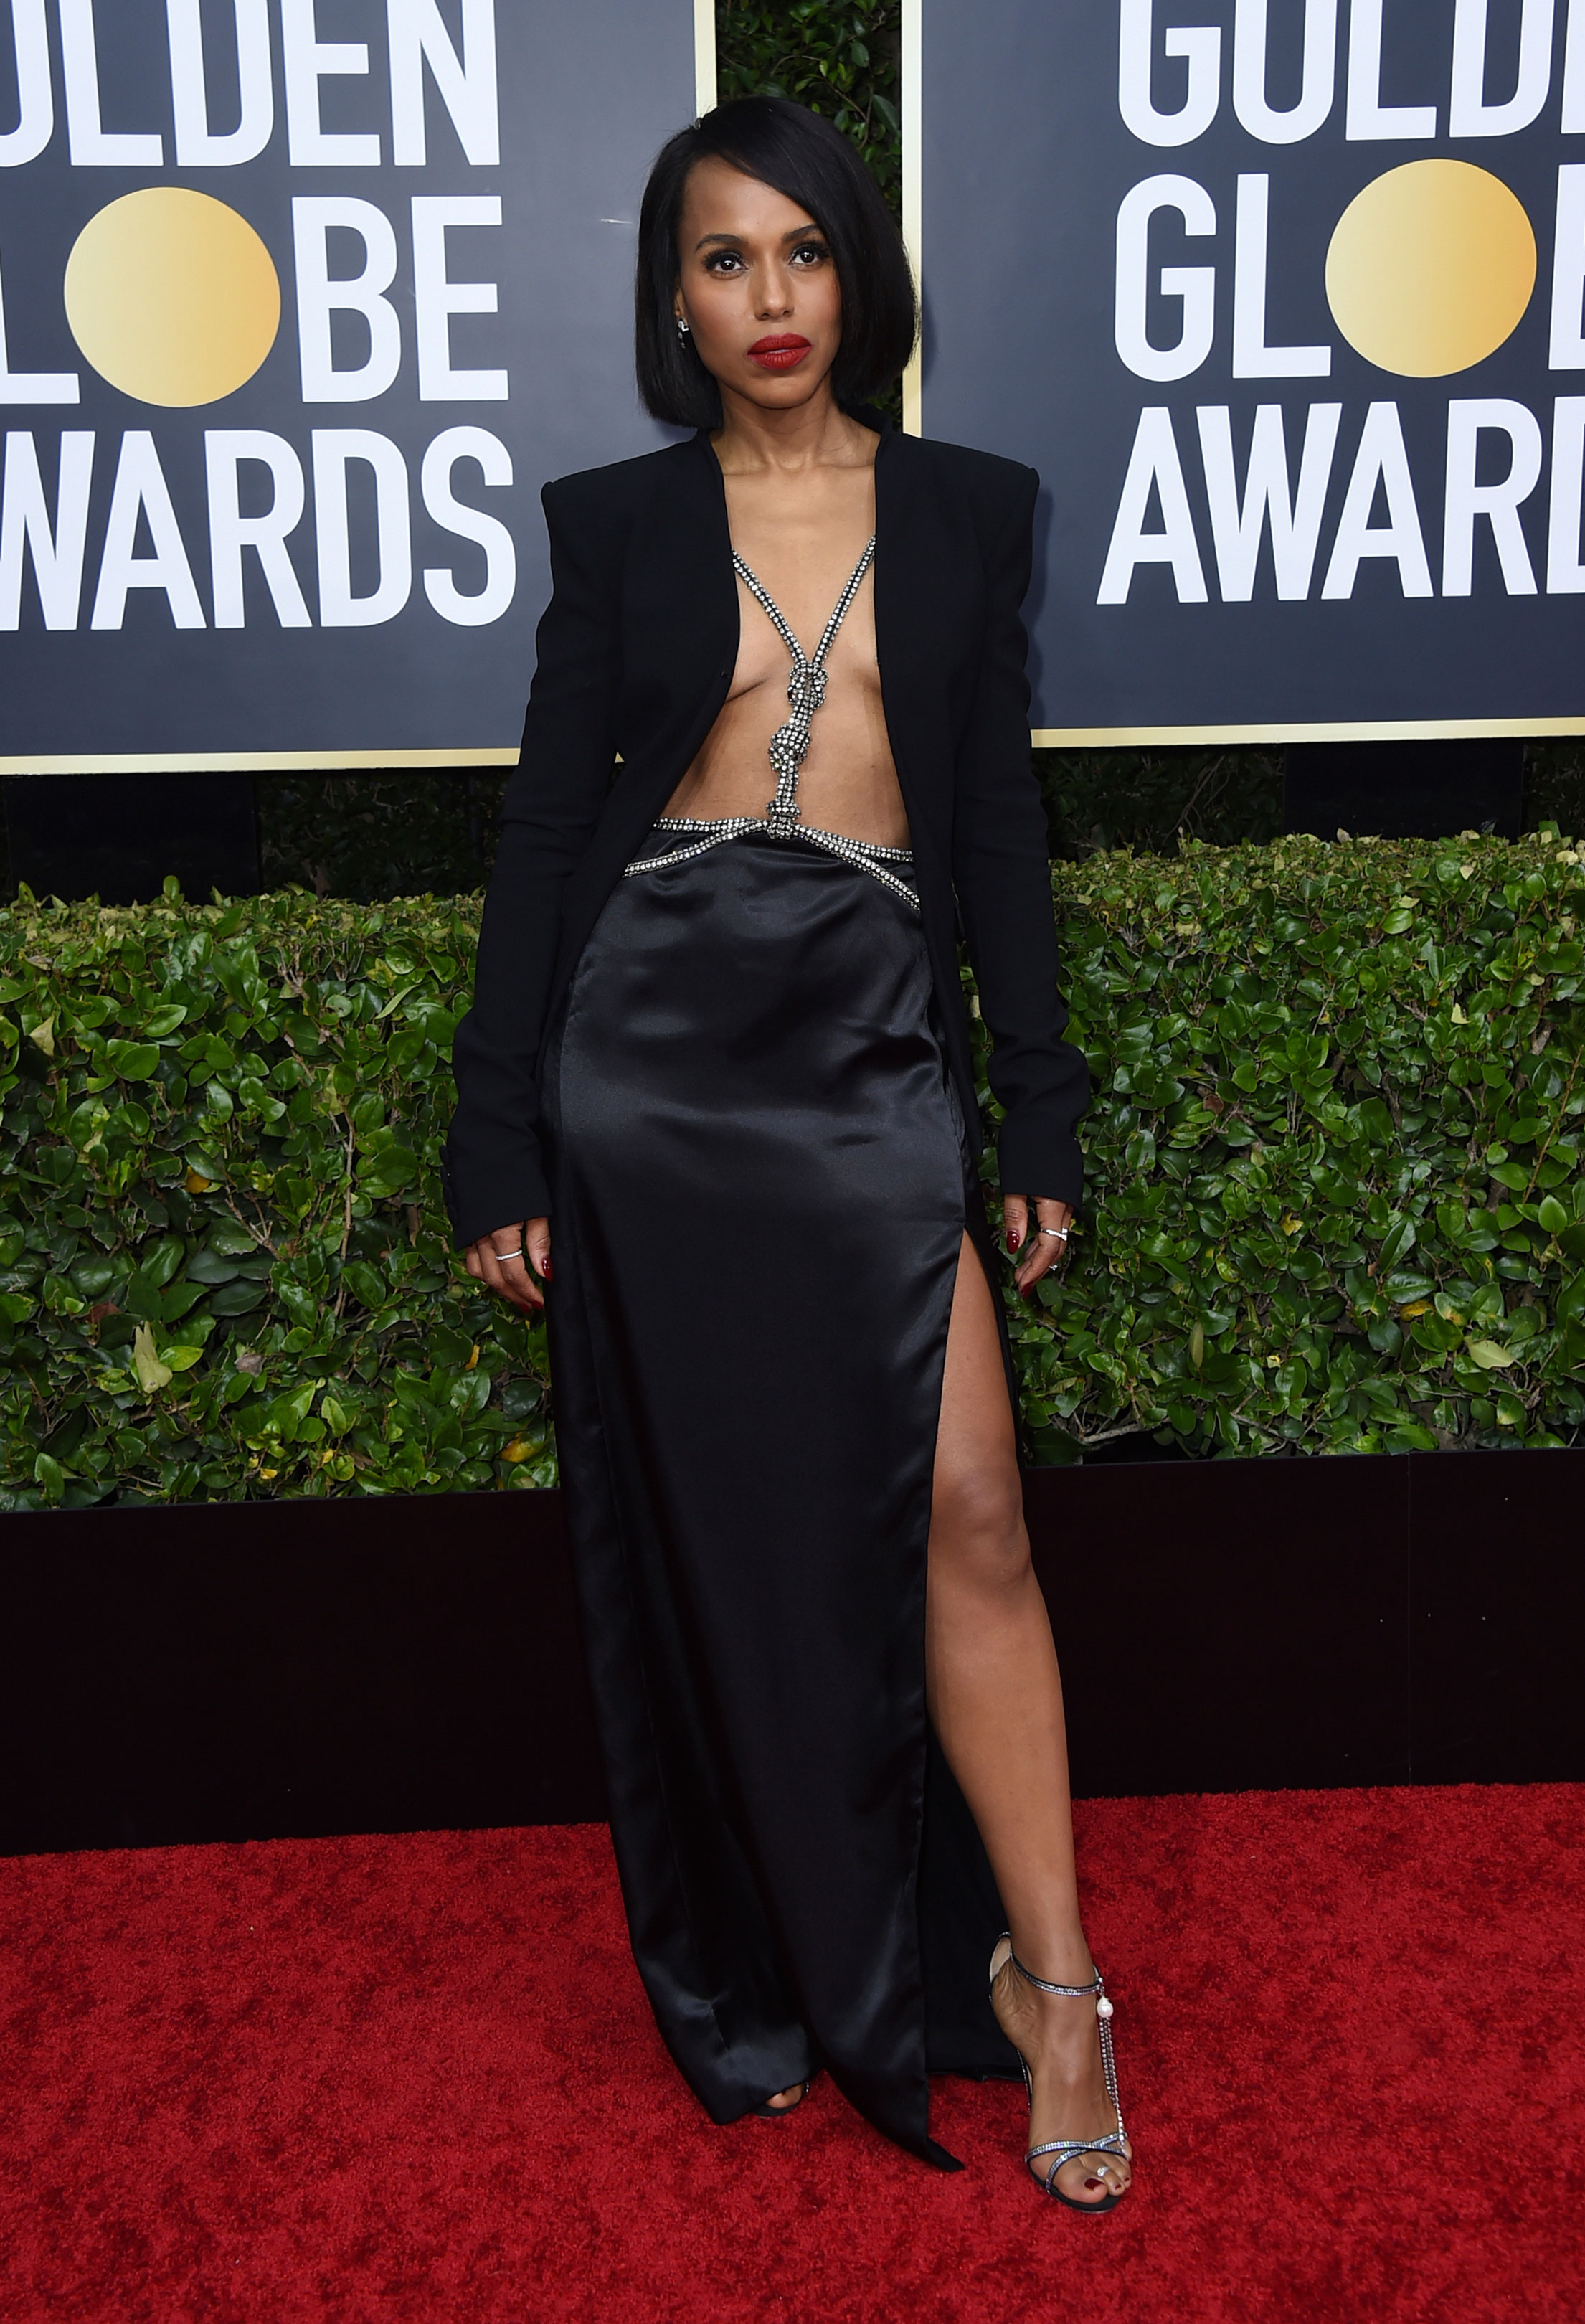 Kerry Washington's OOTN was clearly one of the boldest. The actress opted for black but with a twist. She gave the shirt a miss and instead wore a Altuzarra blazer with a studded harness and a high-slit skirt. The sleek blunt hair cut and that shade of red on the lips added to the oomph!